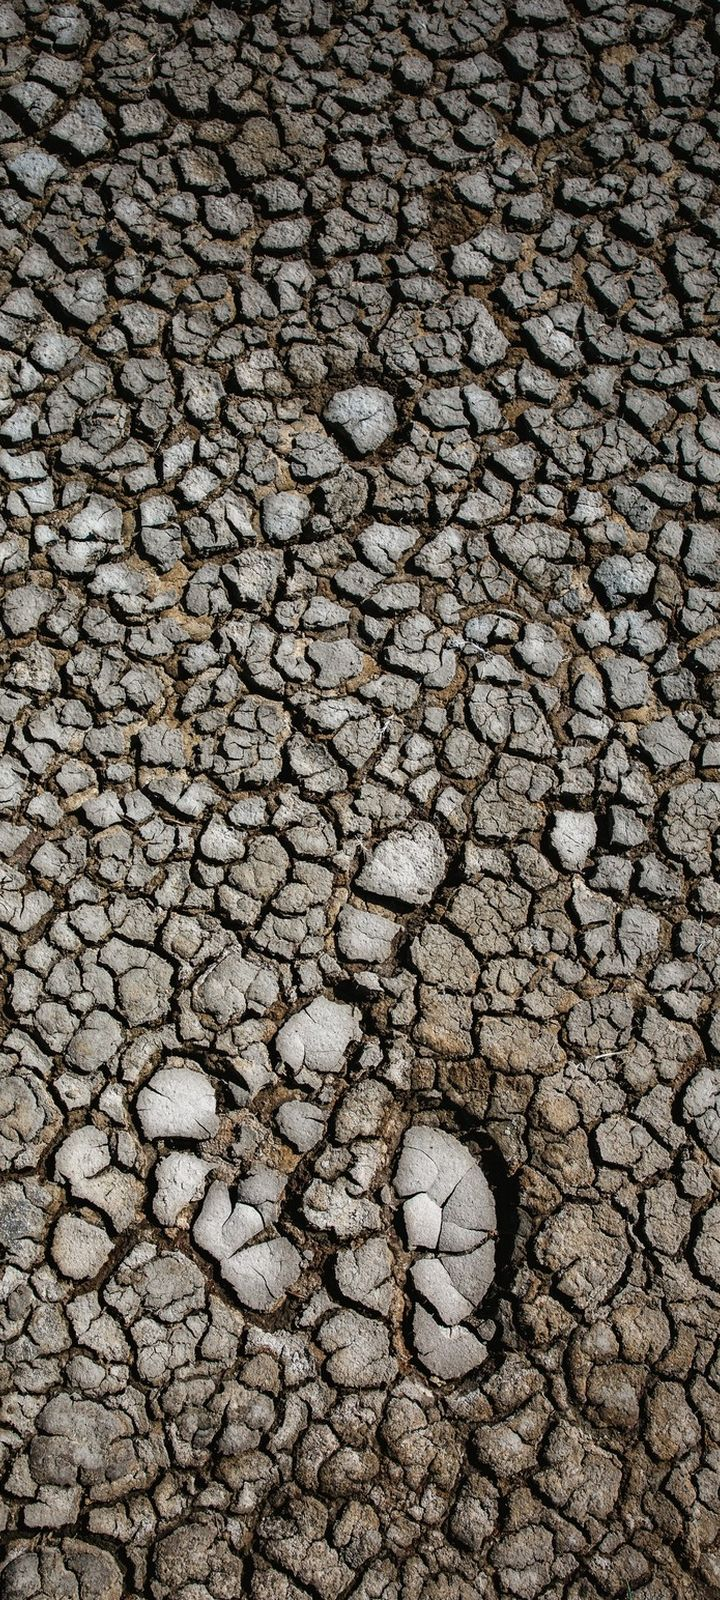 Earth Dry Cracked Wallpaper 720x1600